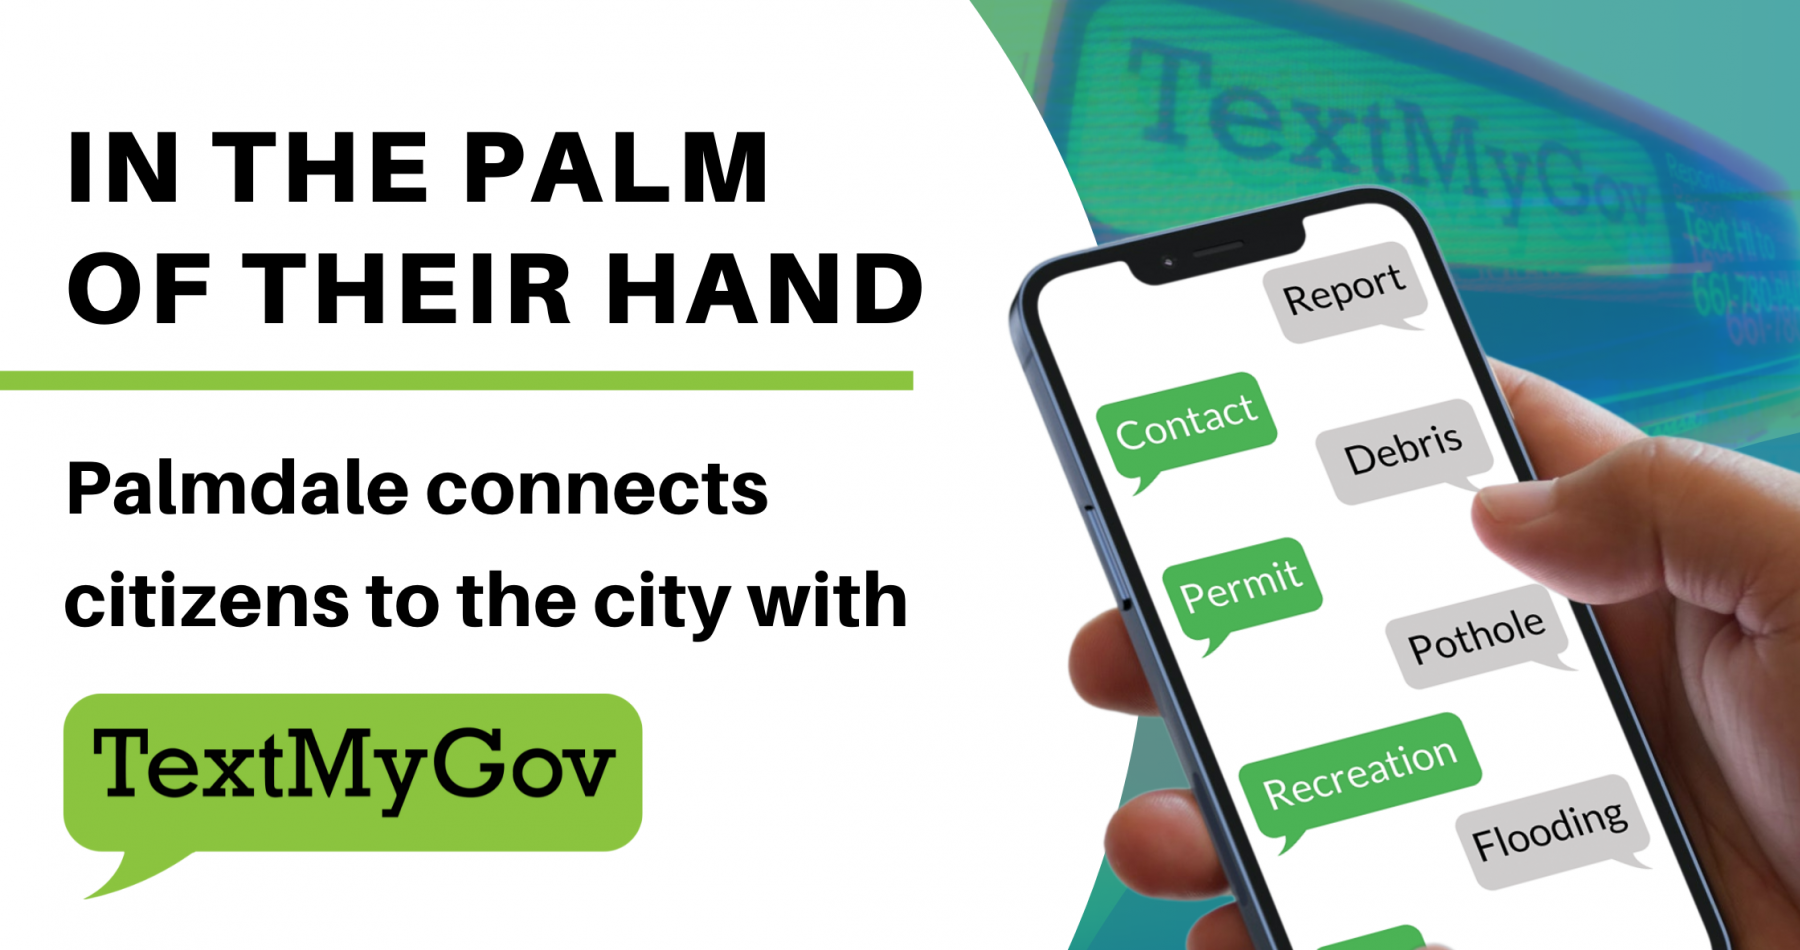 In the Palm of their hand Palmdale connects citizens to the city with